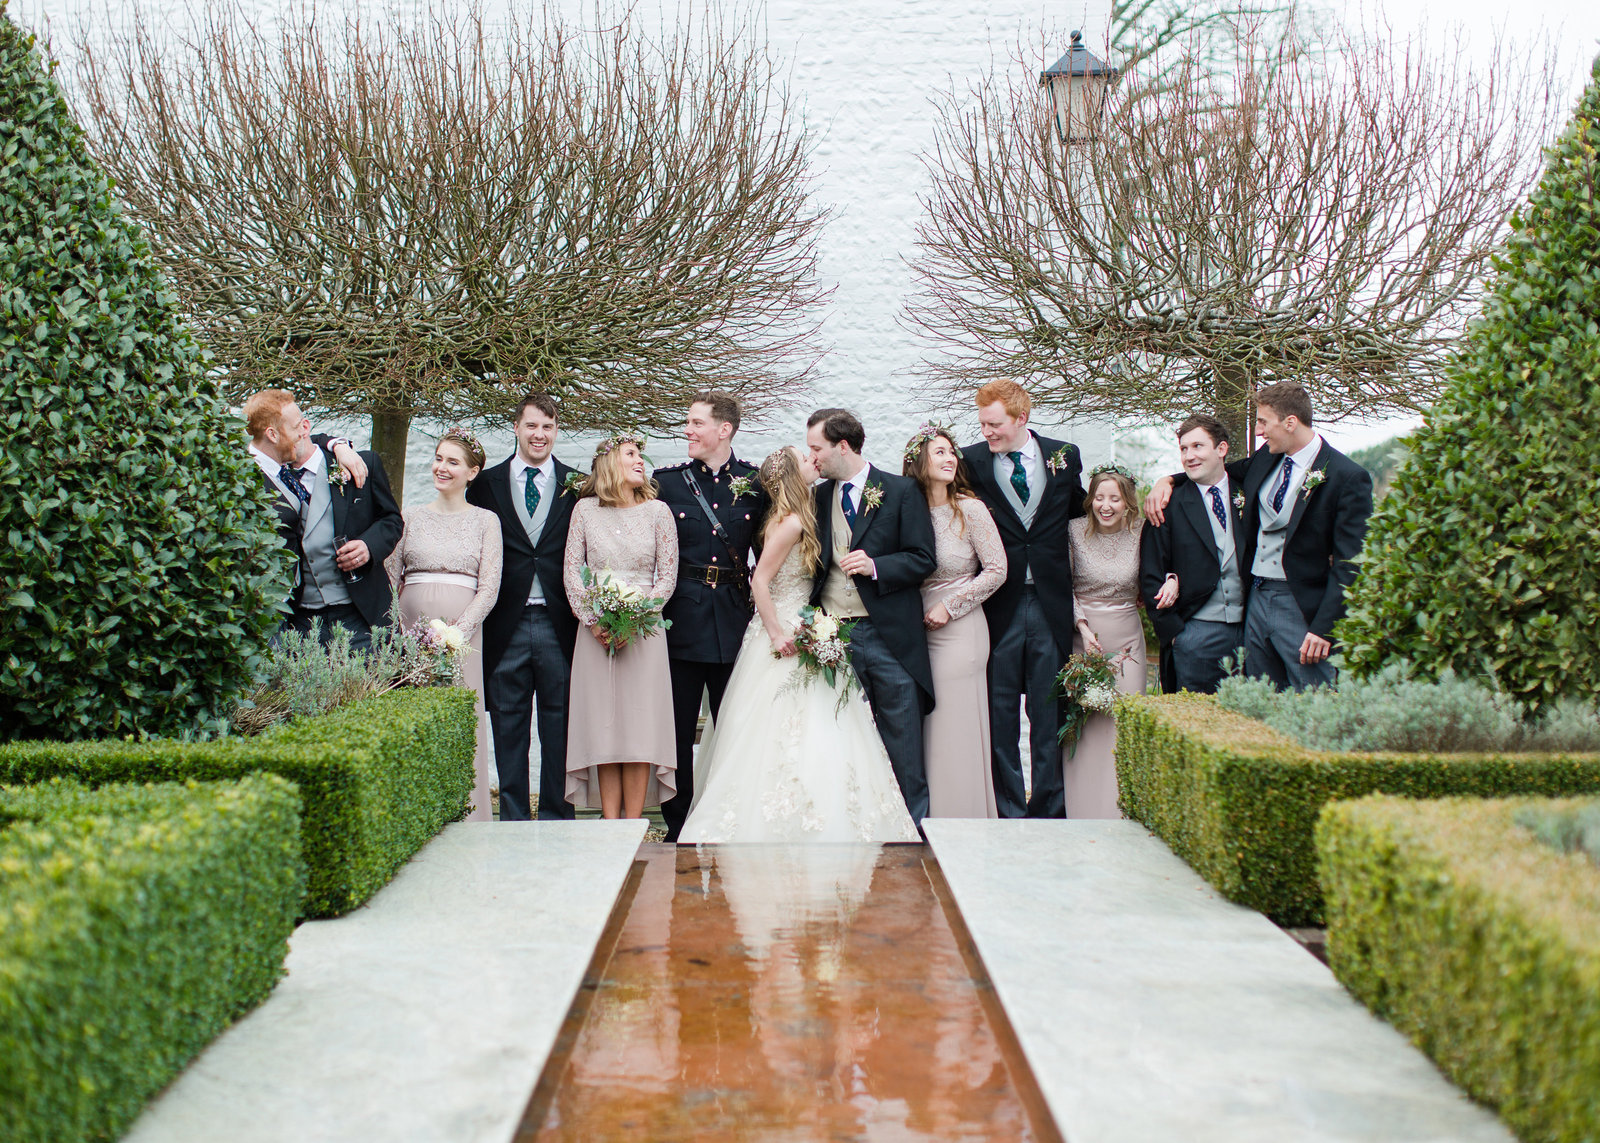 adorlee-0010-southend-barns-wedding-photographer-chichester-west-sussex